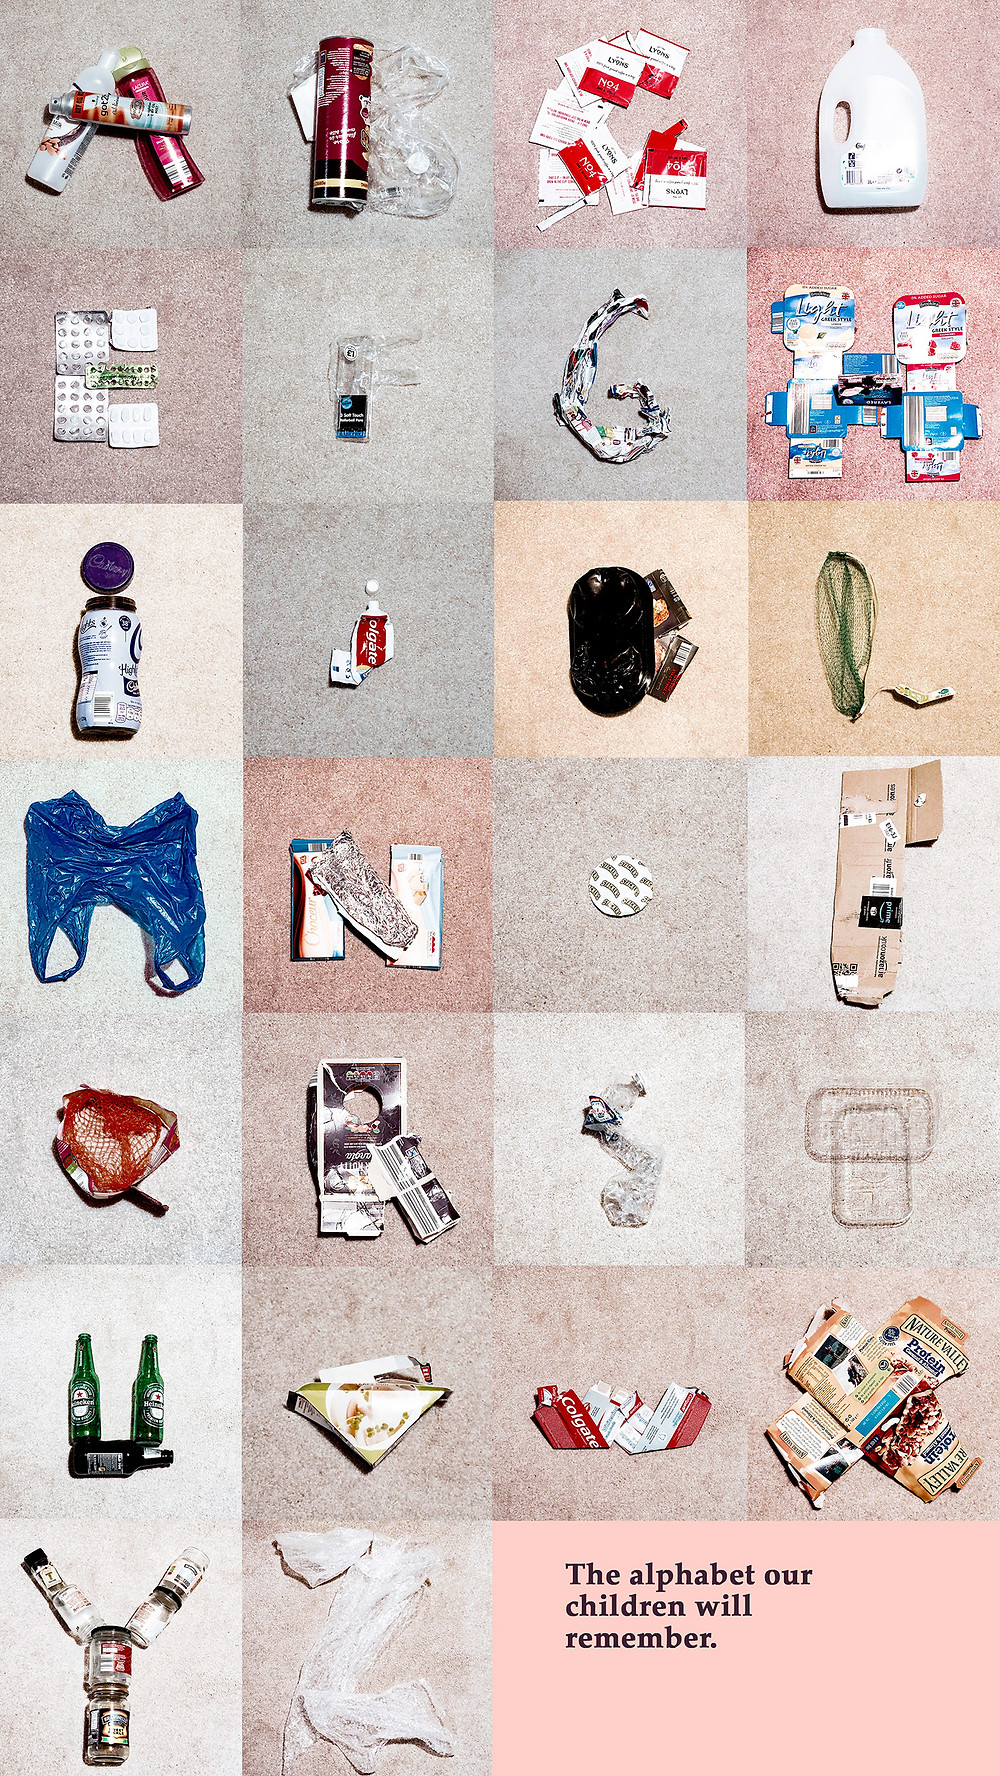 the alphabet our children will remember, environment, plastic, waste, camille obligis, advertising campaign